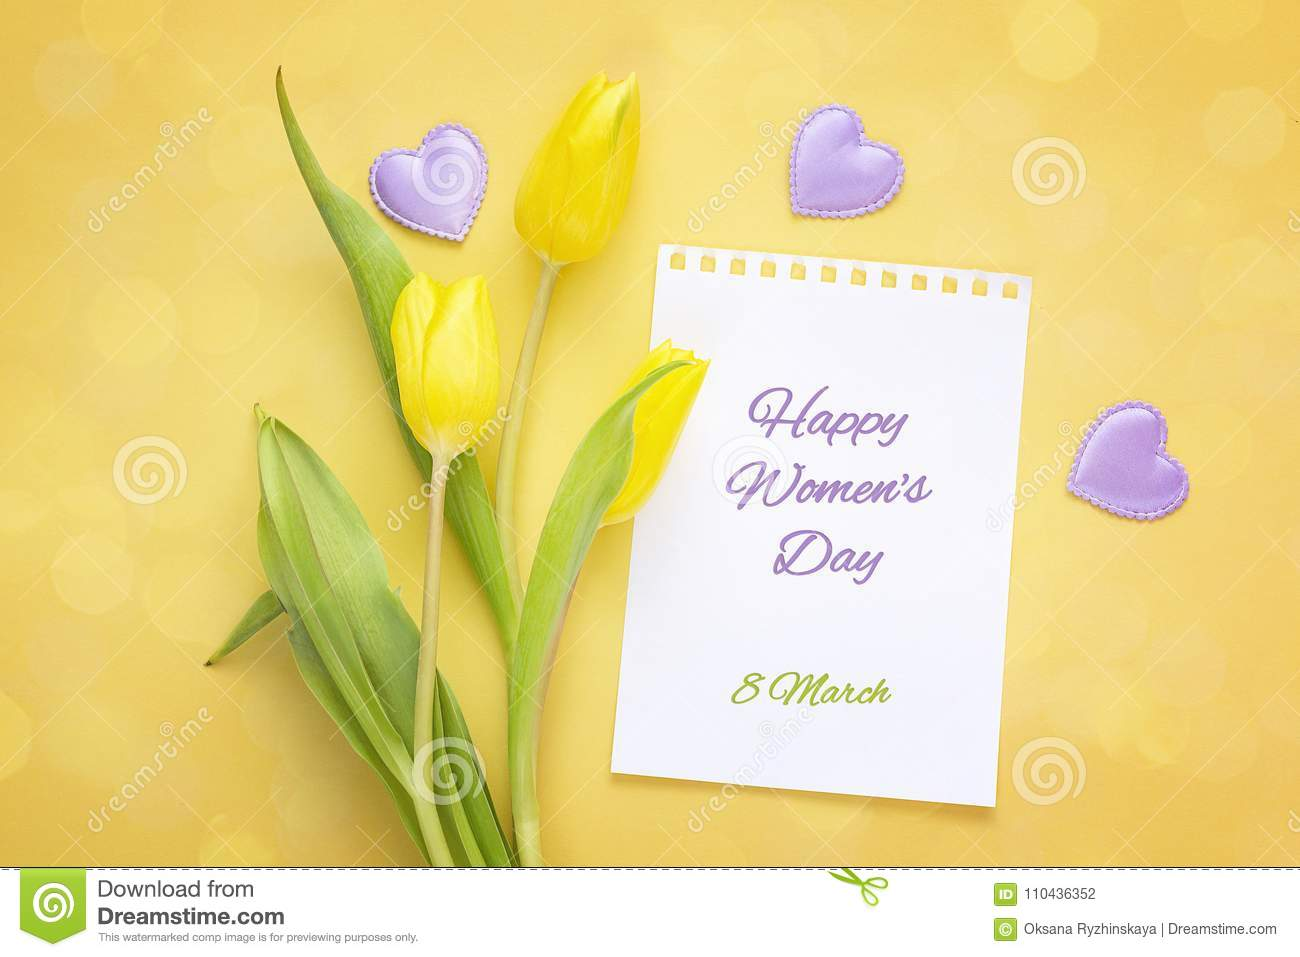 Women`s Day greeting message with yellow tulips on ayellow backg